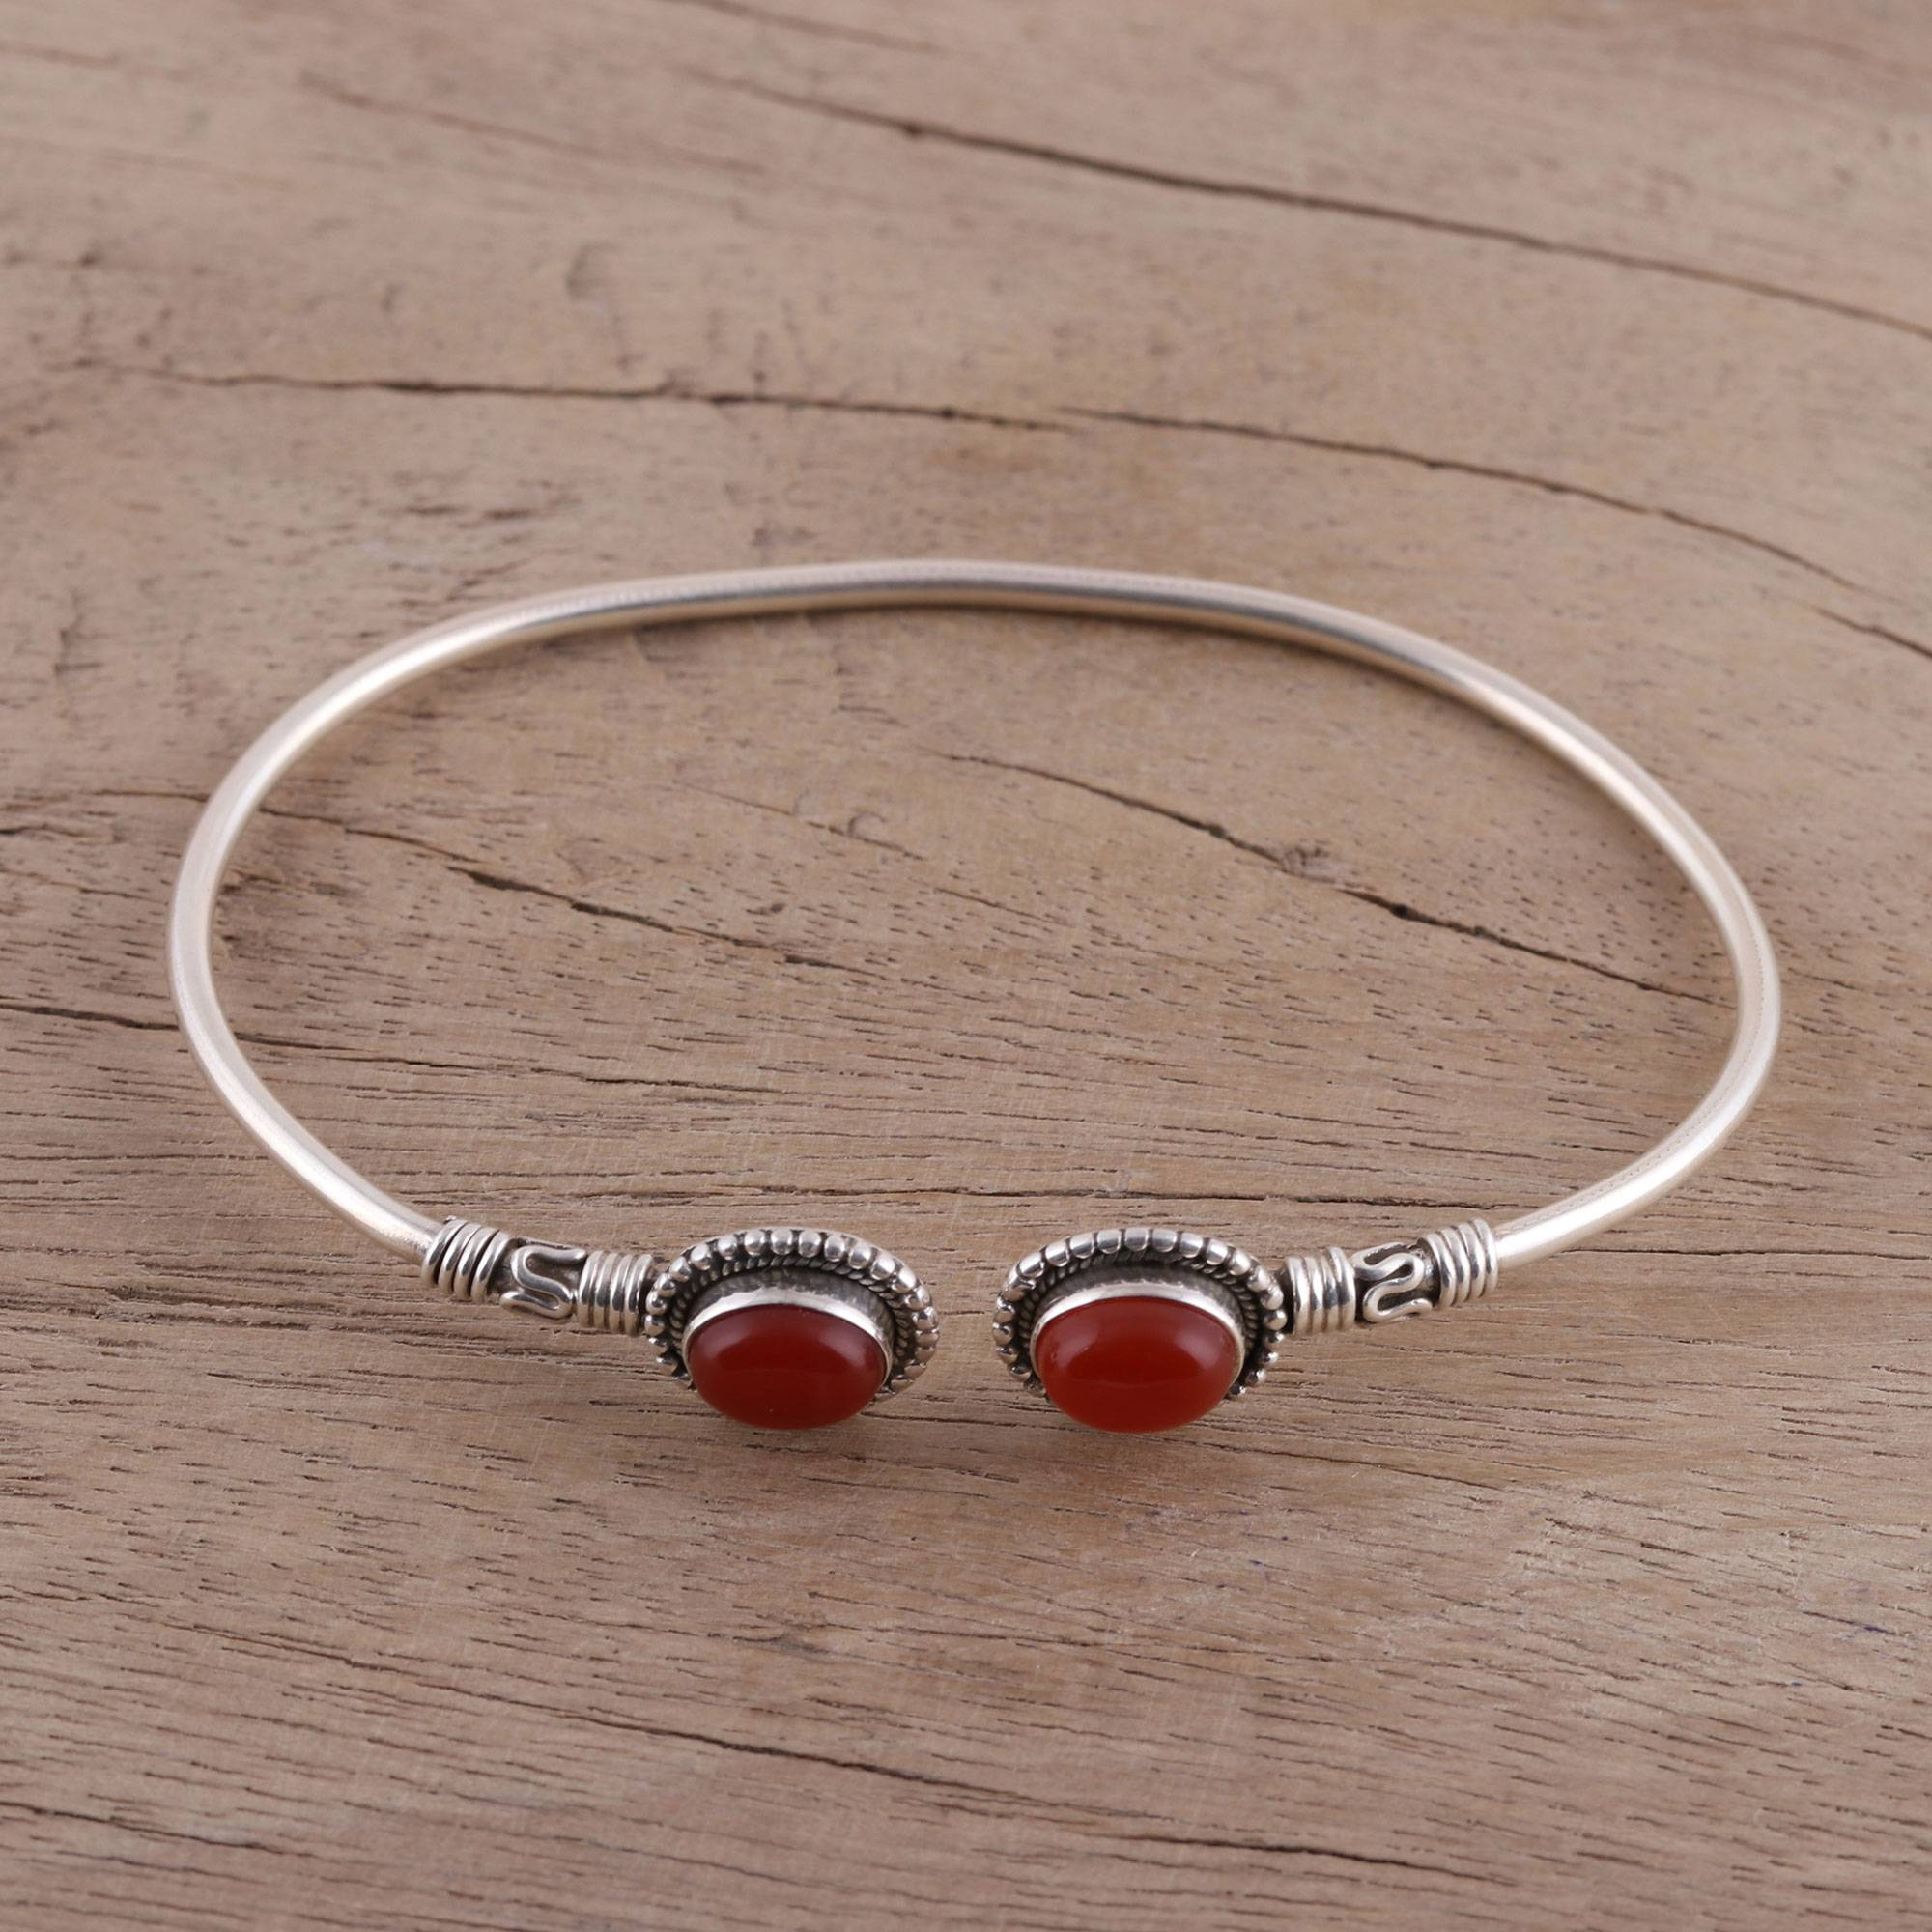 Carnelian and Sterling Silver Cuff Bracelet from India, 'Flaring Ovals'